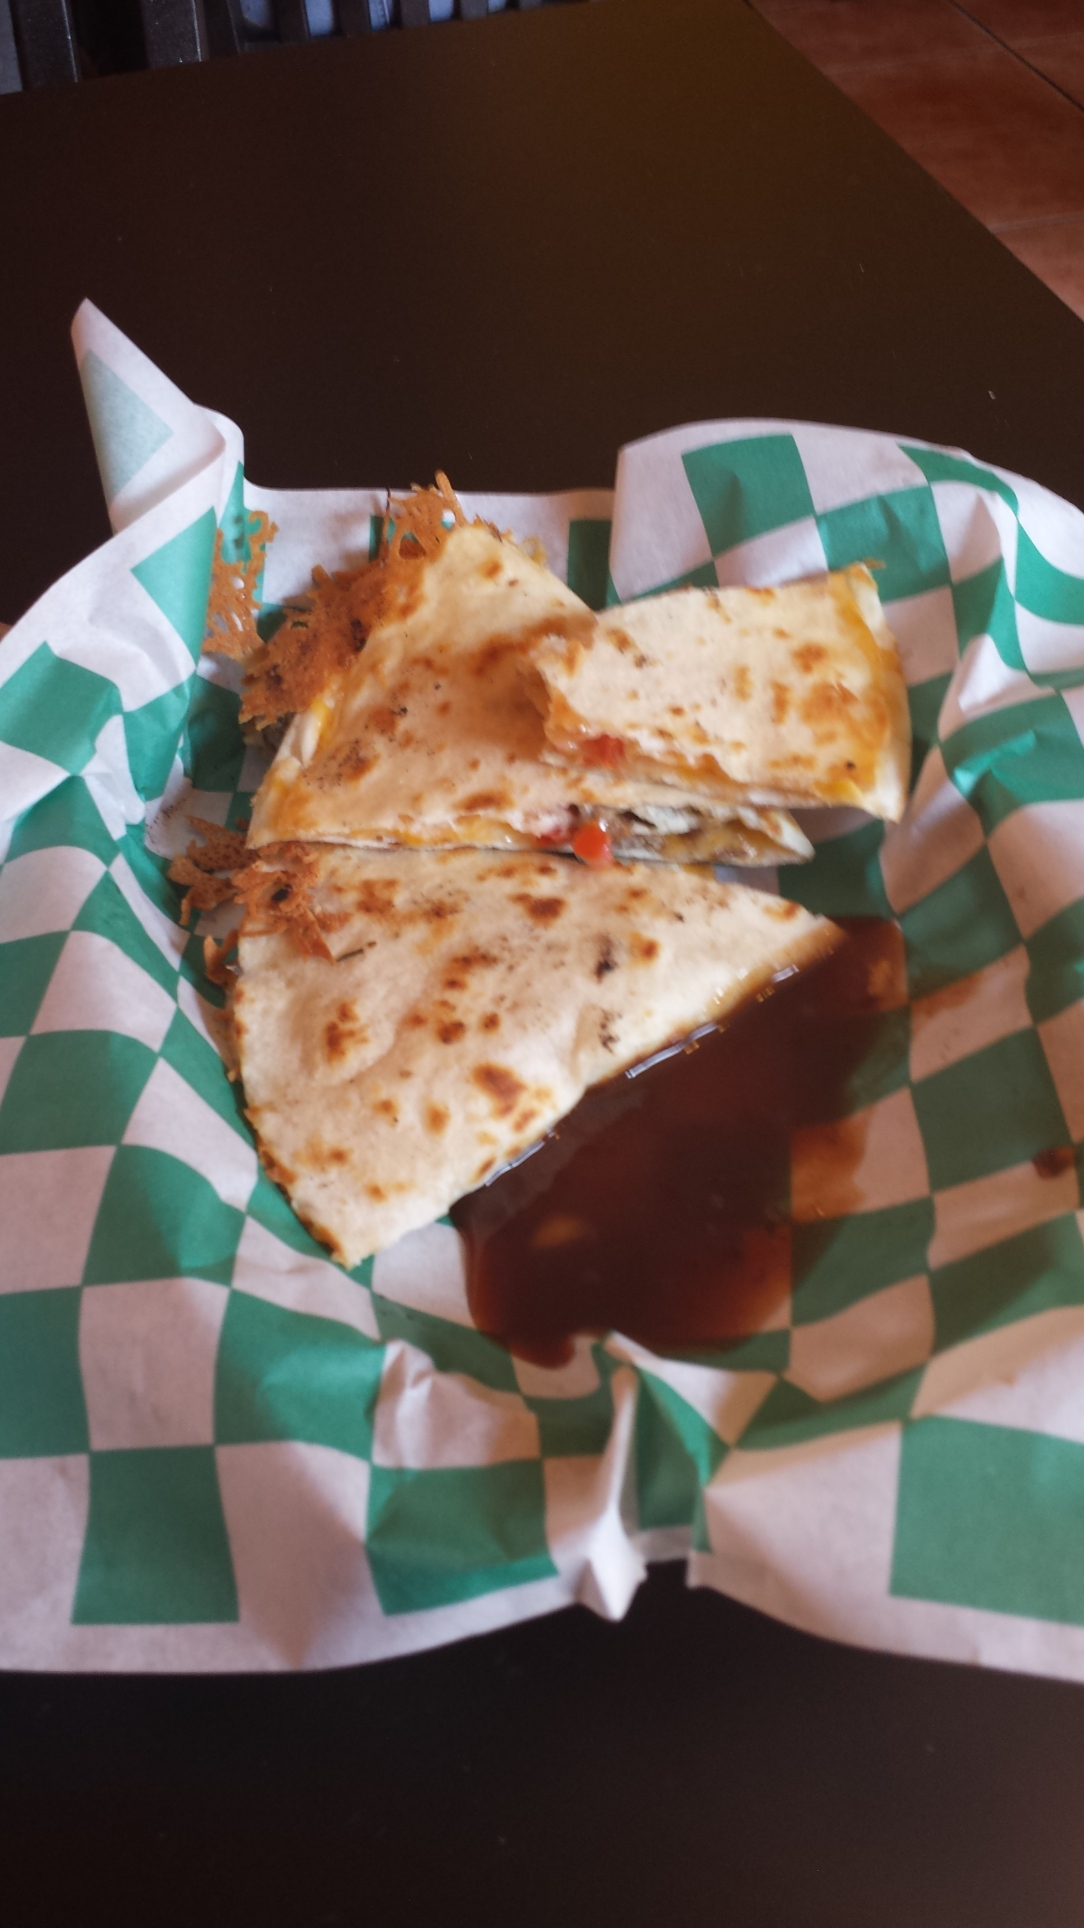 I tried to take a nice picture but couldn't help taking a few bites and smothering it with BBQ sauce as soon as I got my quesadilla.